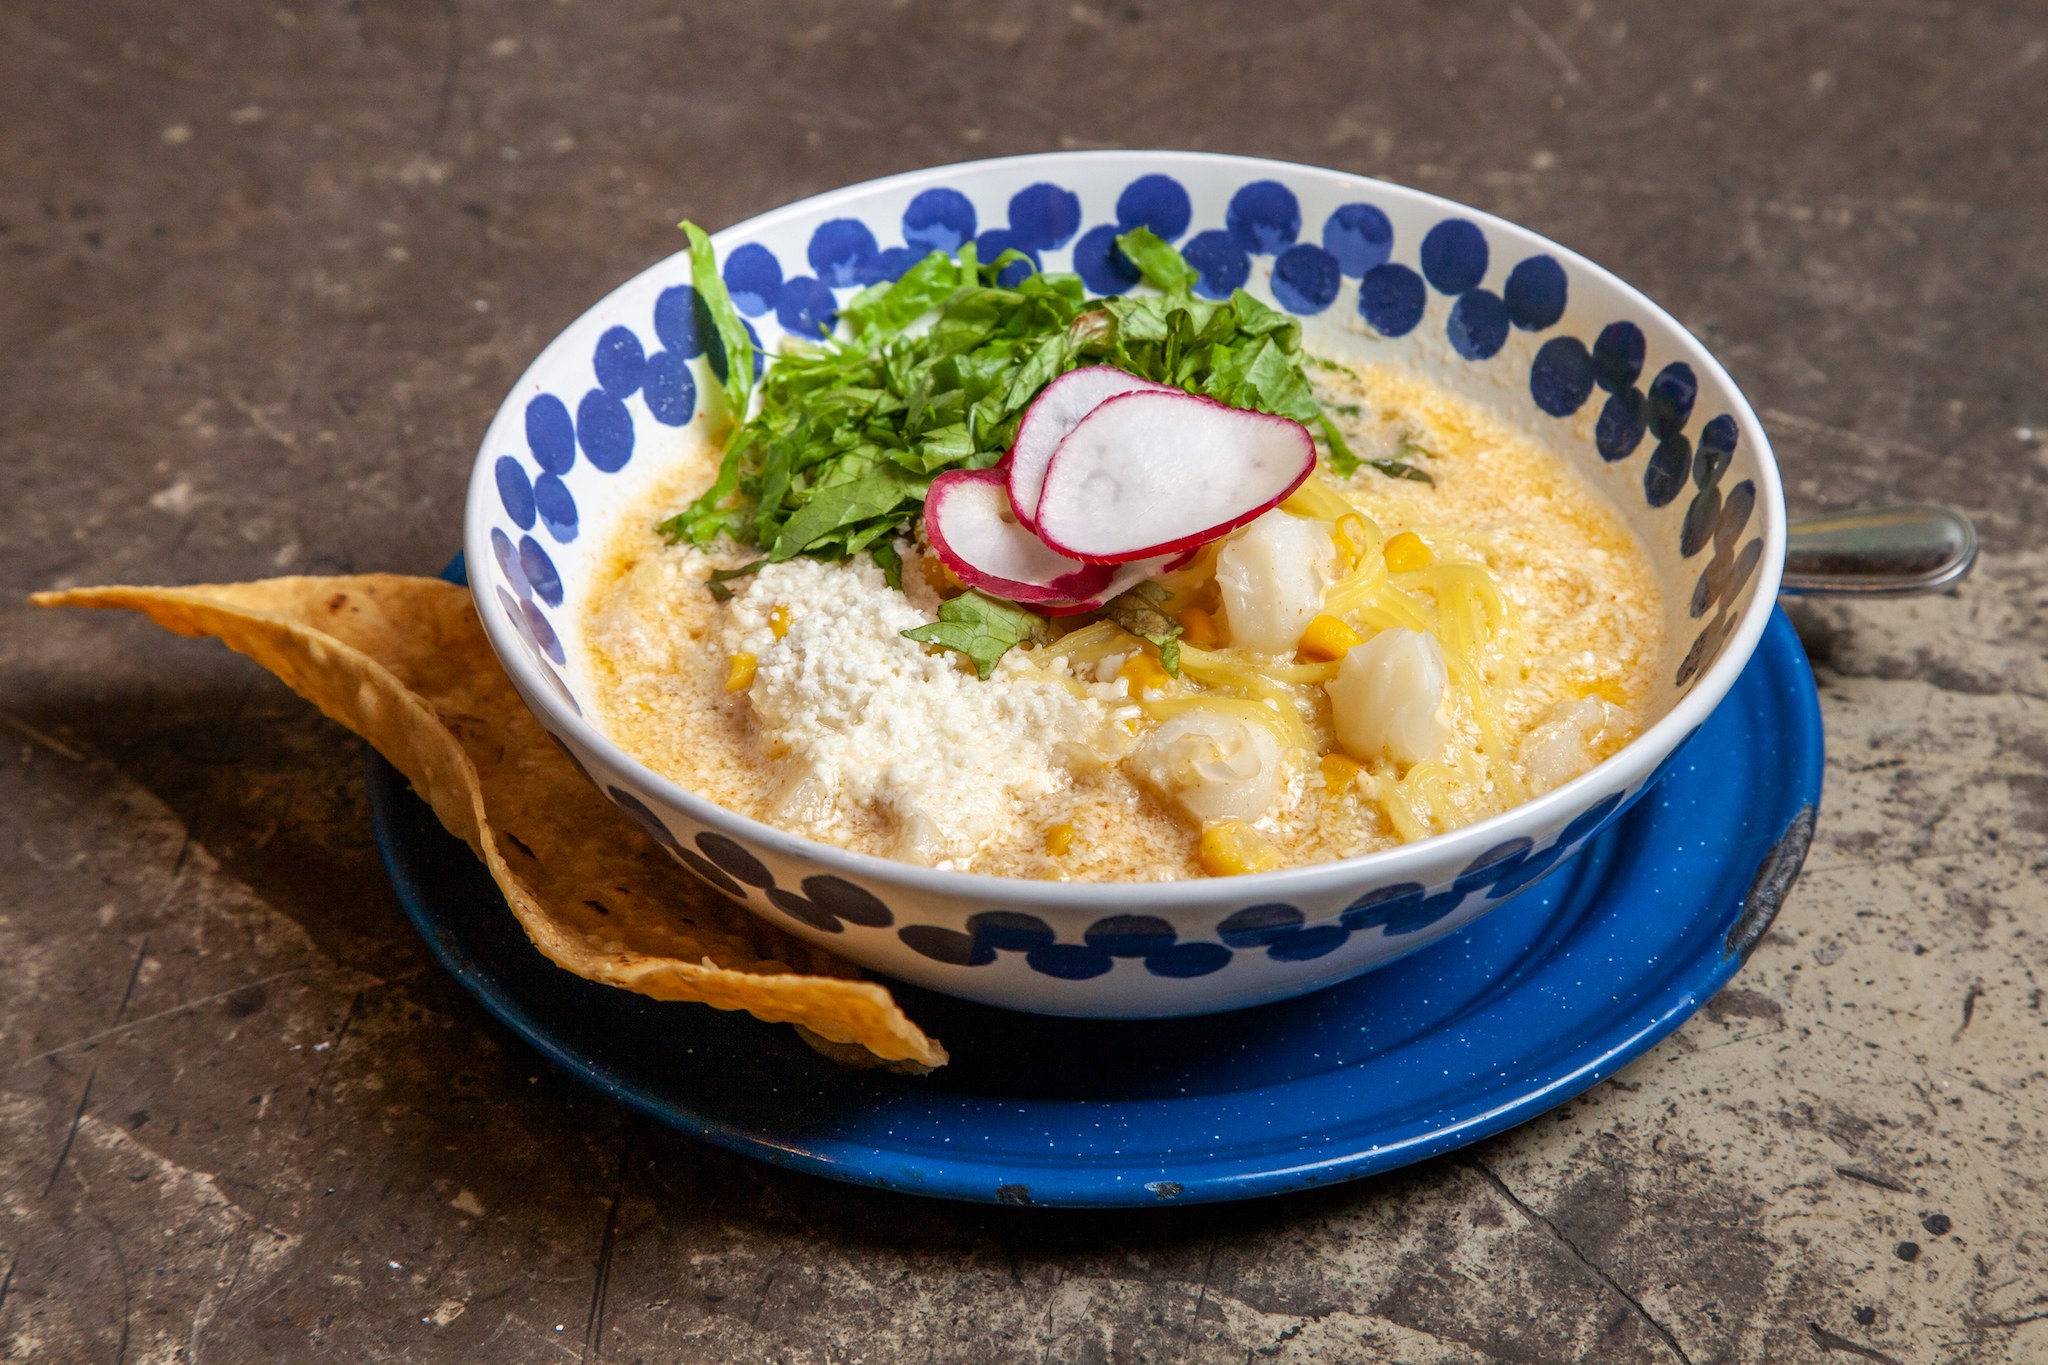 There's a pozole pop-up inside Mexican dessert shop La Newyorkina